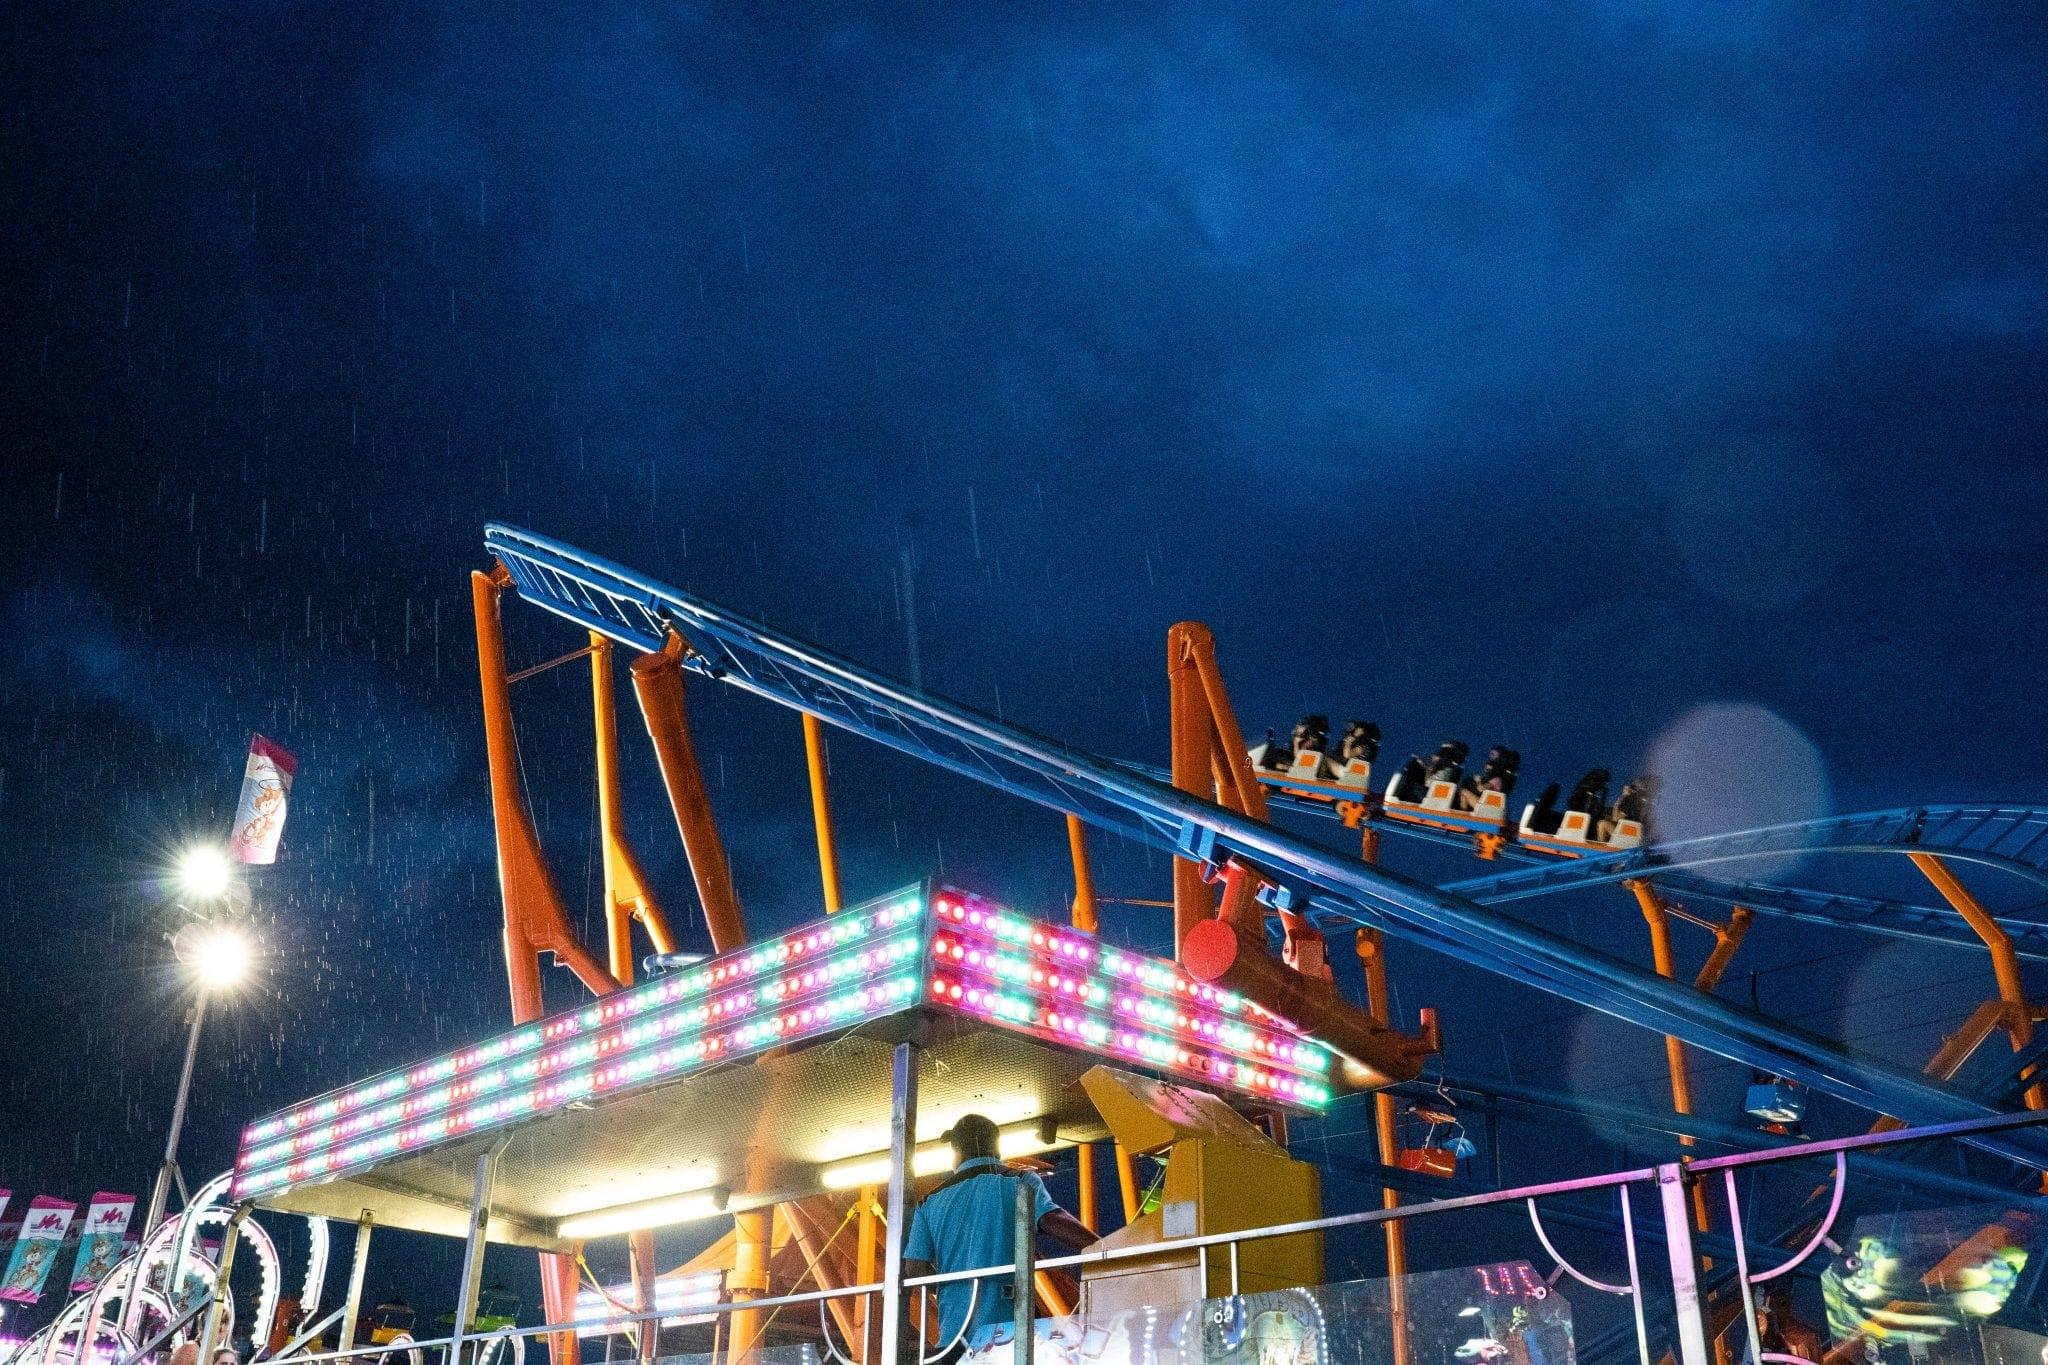 Scenes from the New York State Fair: Midway in rain